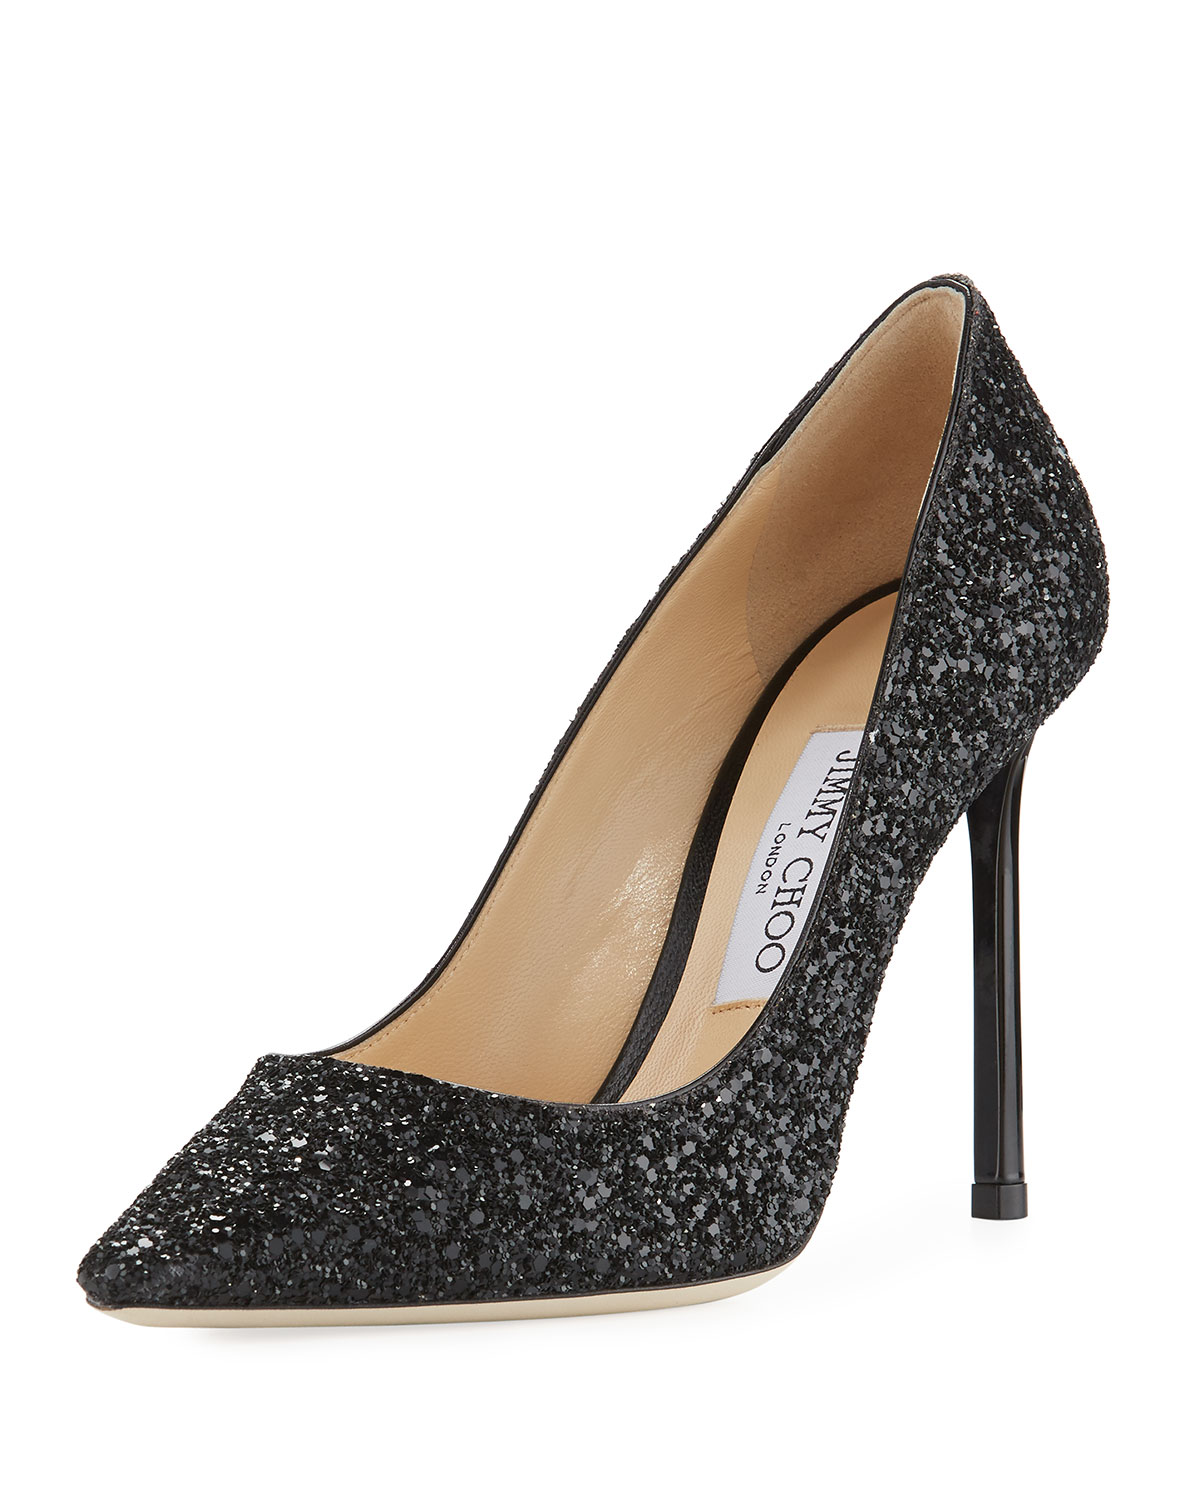 b71db637411 Jimmy Choo Romy 100mm Coarse Glitter Fabric Pointed-Toe Pumps